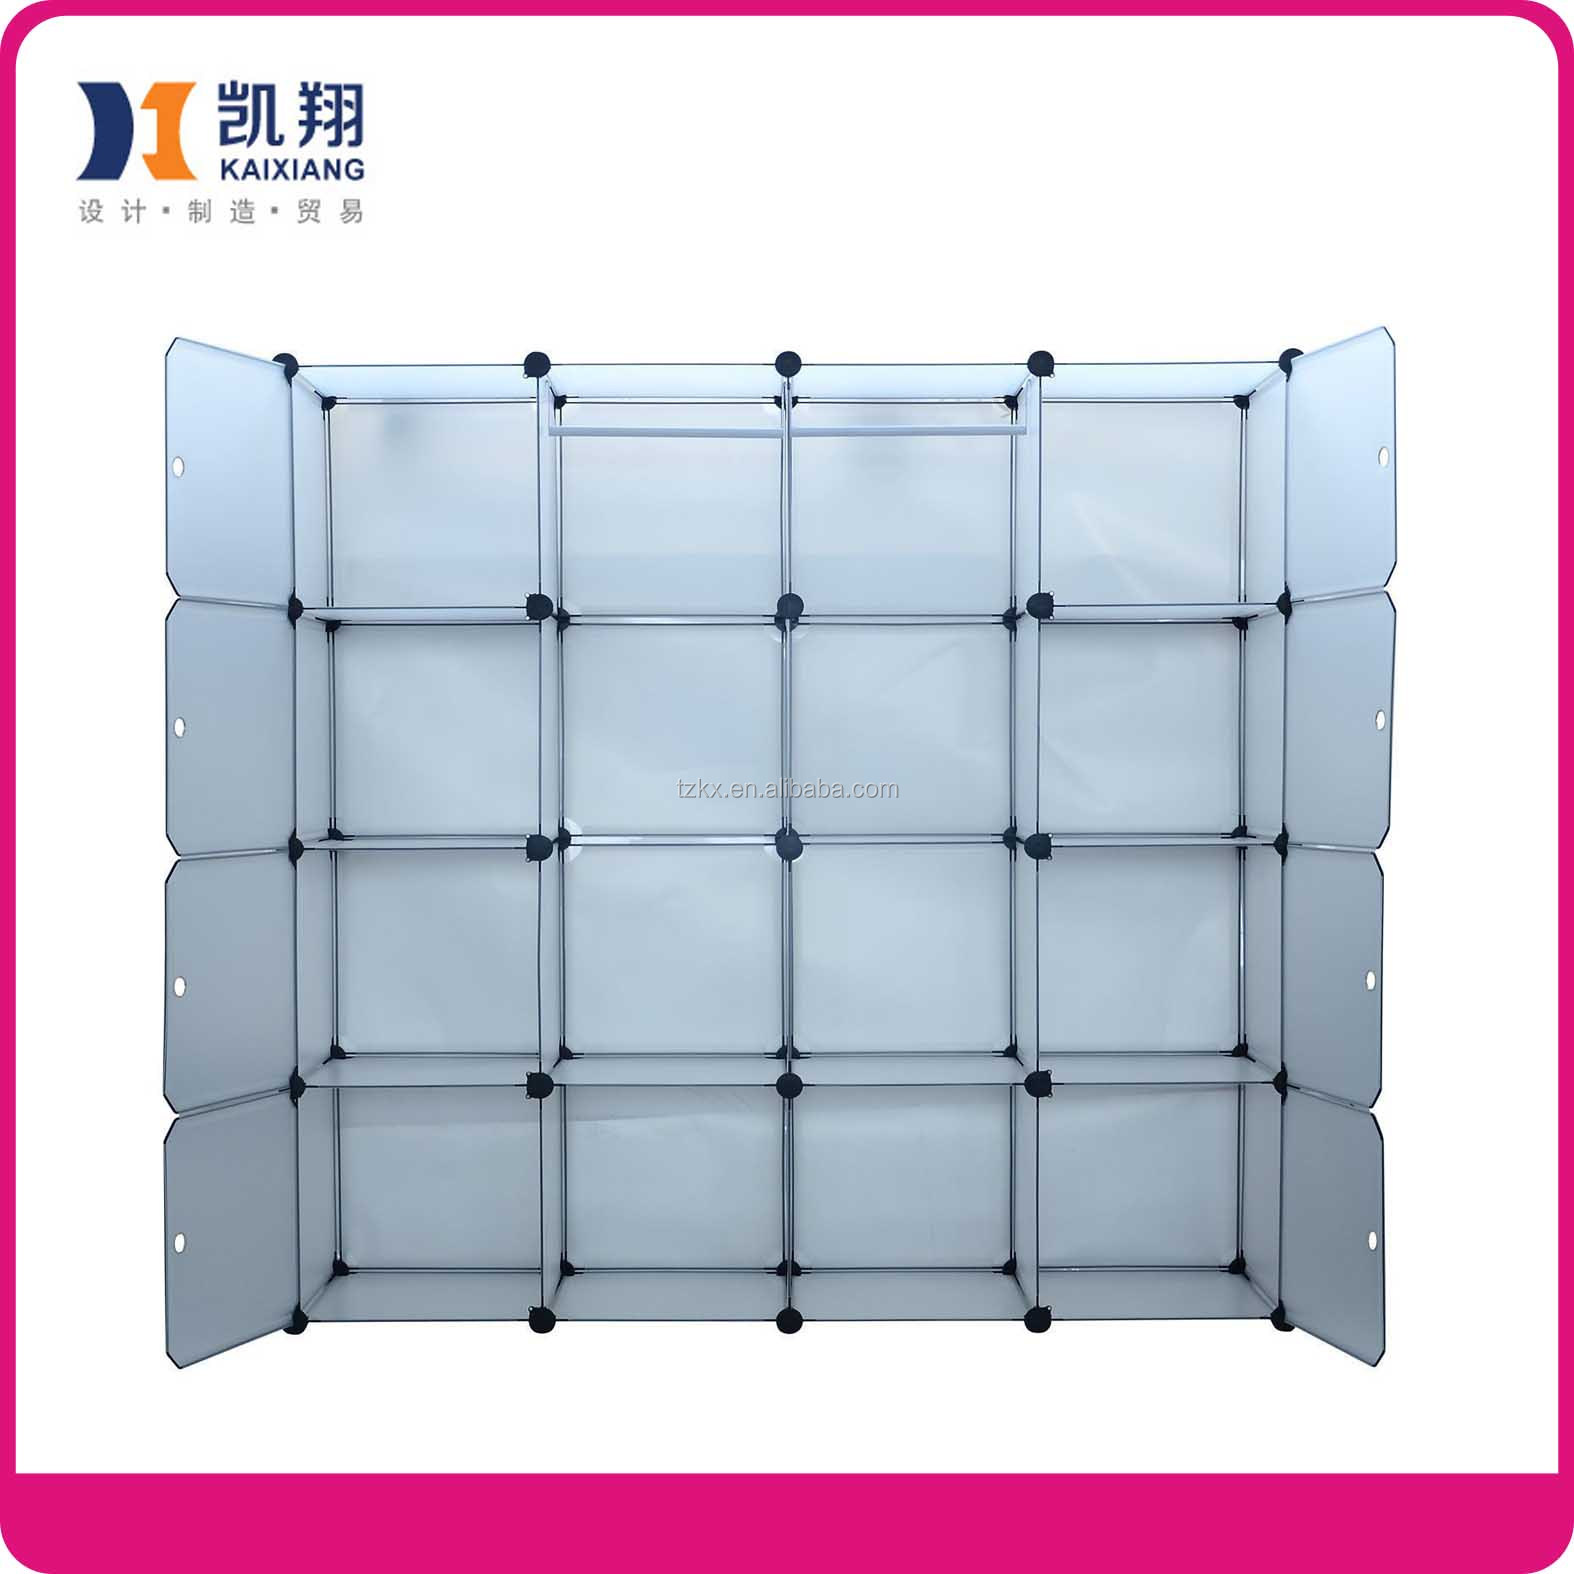 Merveilleux Plastic Folding Stackable Storage Cubes   Buy Plastic Storage Cubes,Folding  Storage Cube,Plastic Stackable Storage Cubes Product On Alibaba.com